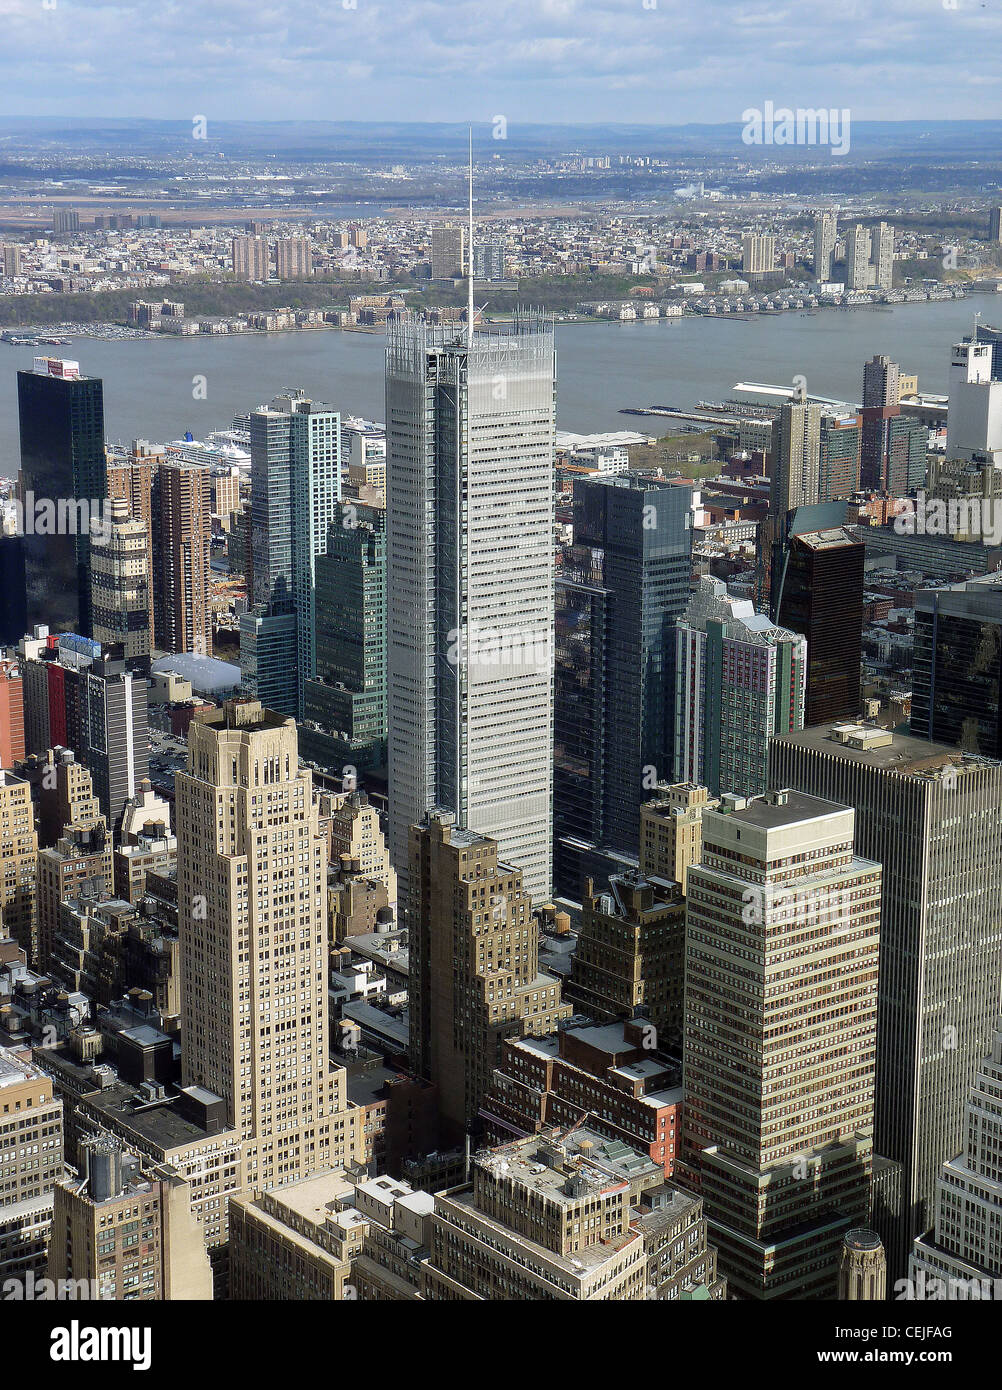 New York Times building and Hudson River in Manhattan, New York, USA - Stock Image